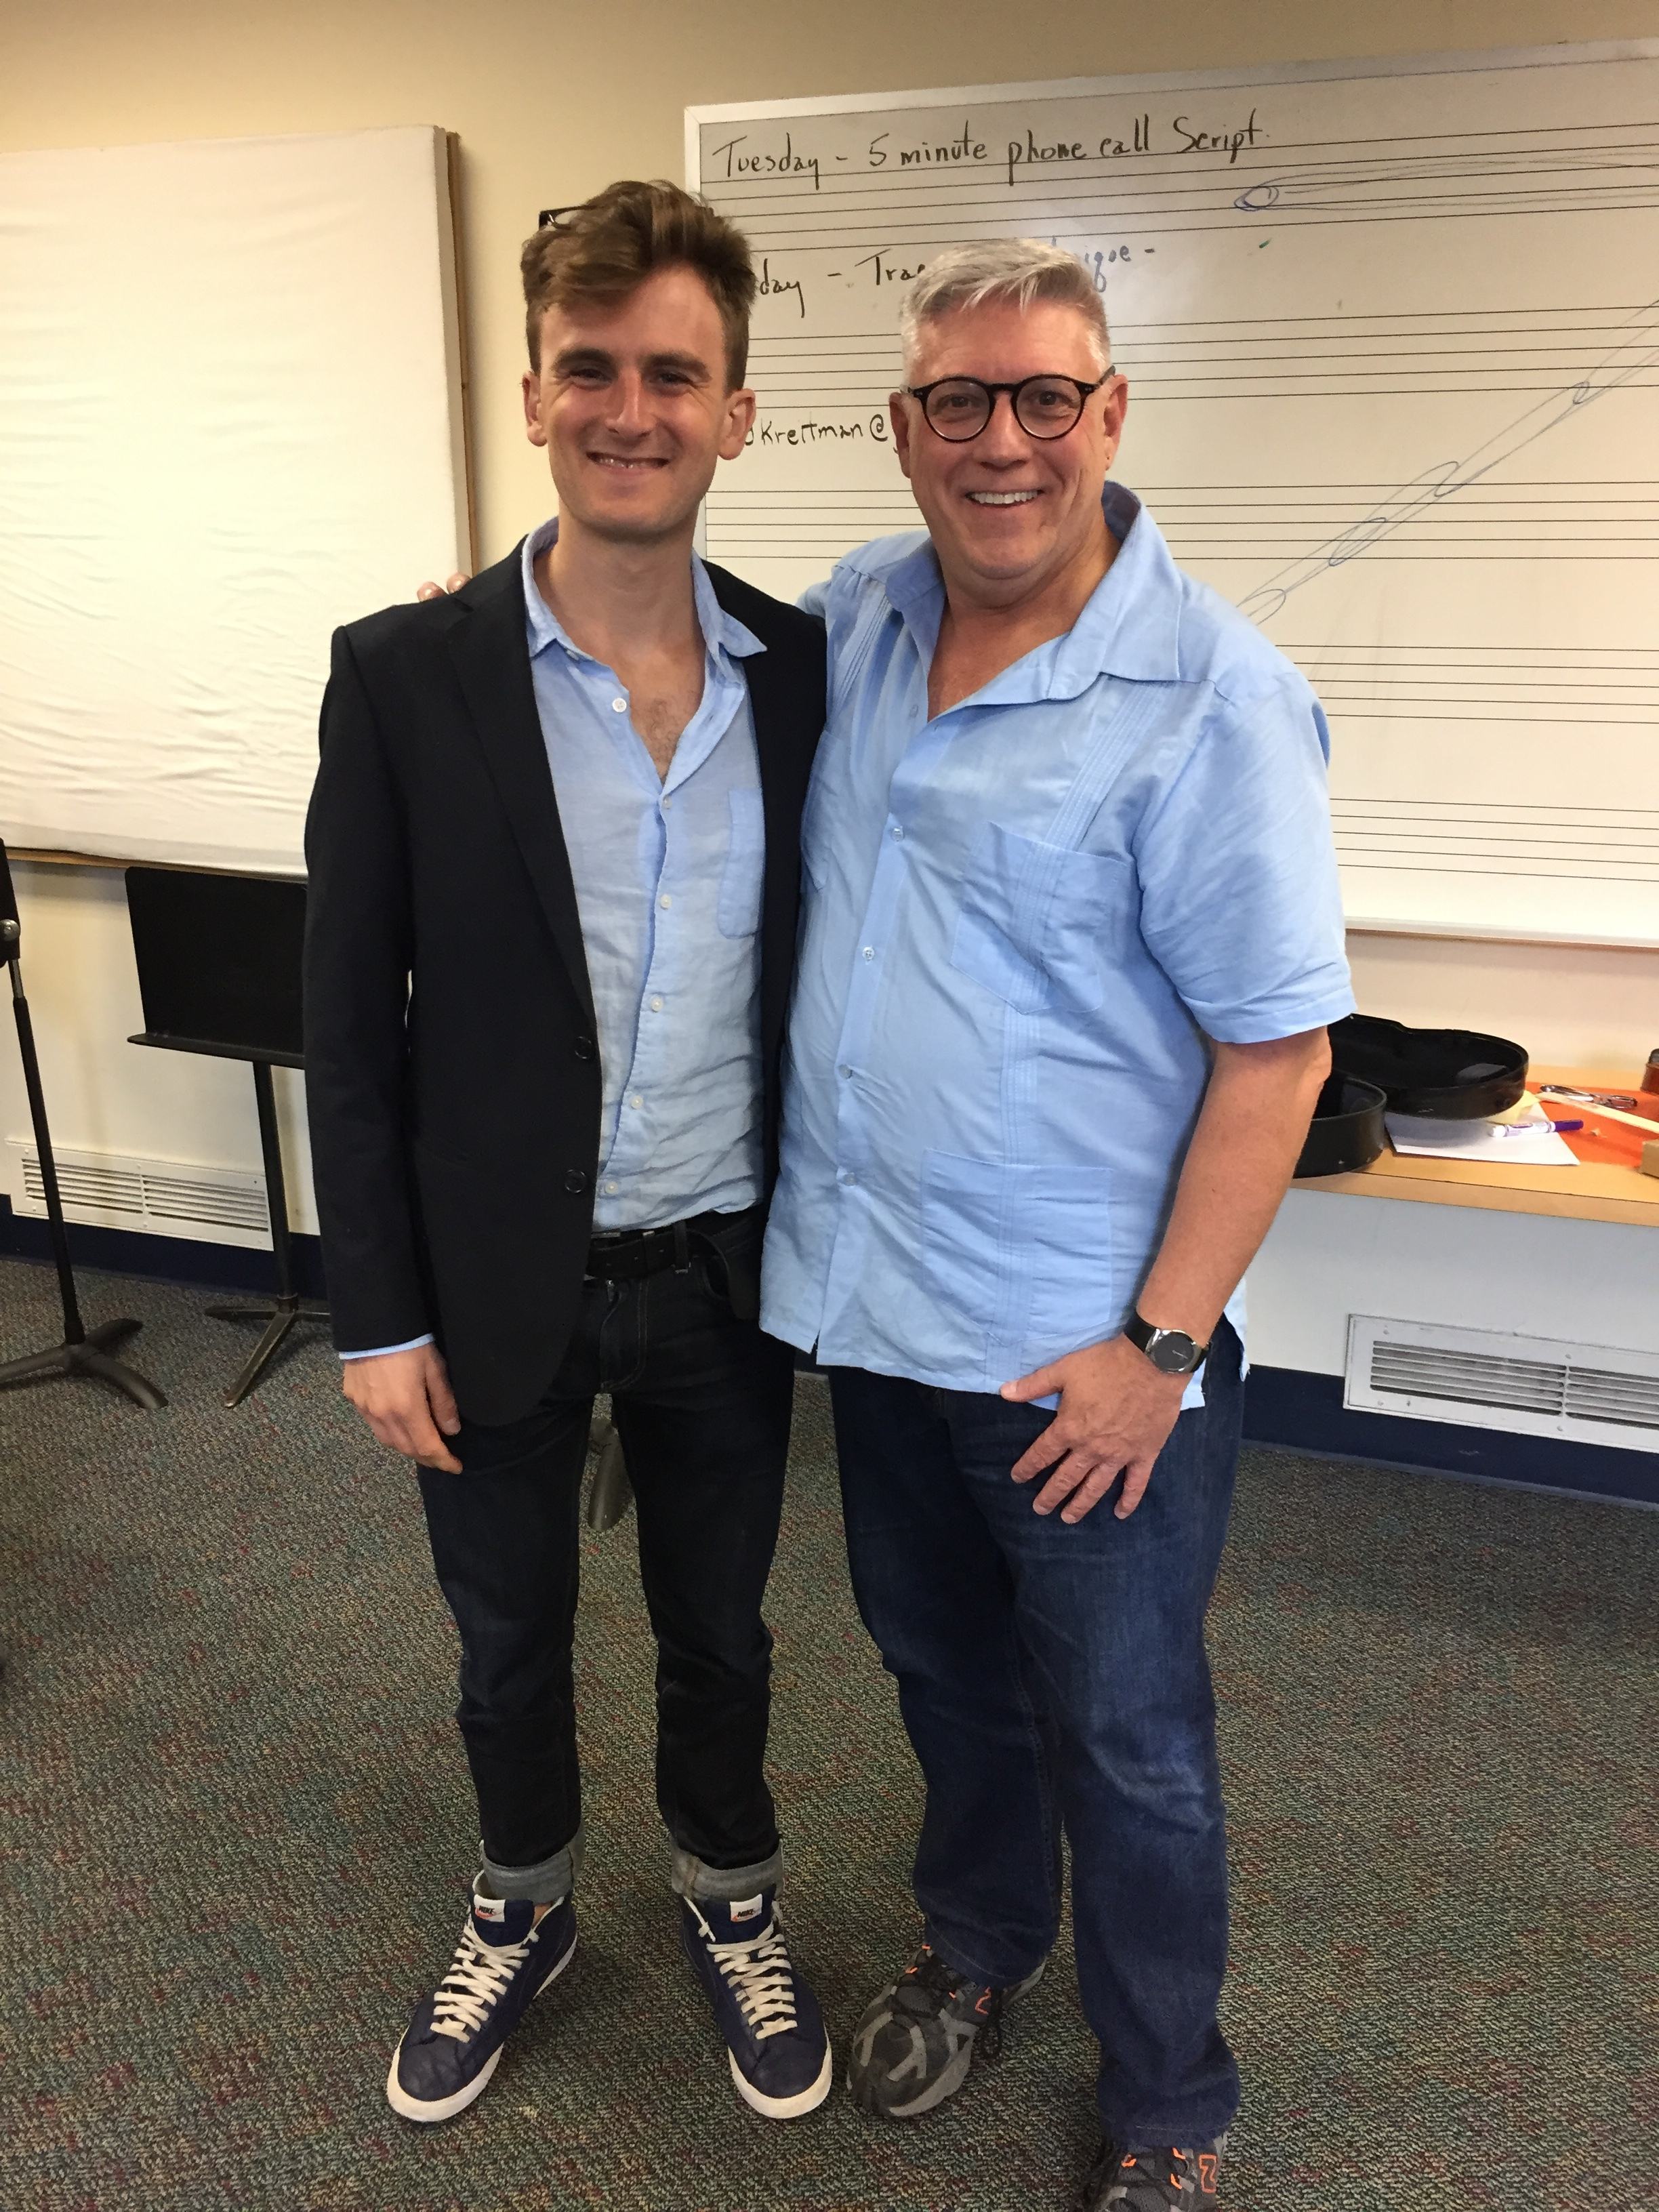 Myself and Edward Kreitman. He was the Suzuki teacher trainer for my class both this summer and last summer. He is a really wonderful, skilled and generous teacher. I am excited to share what I learned with my students this coming year.